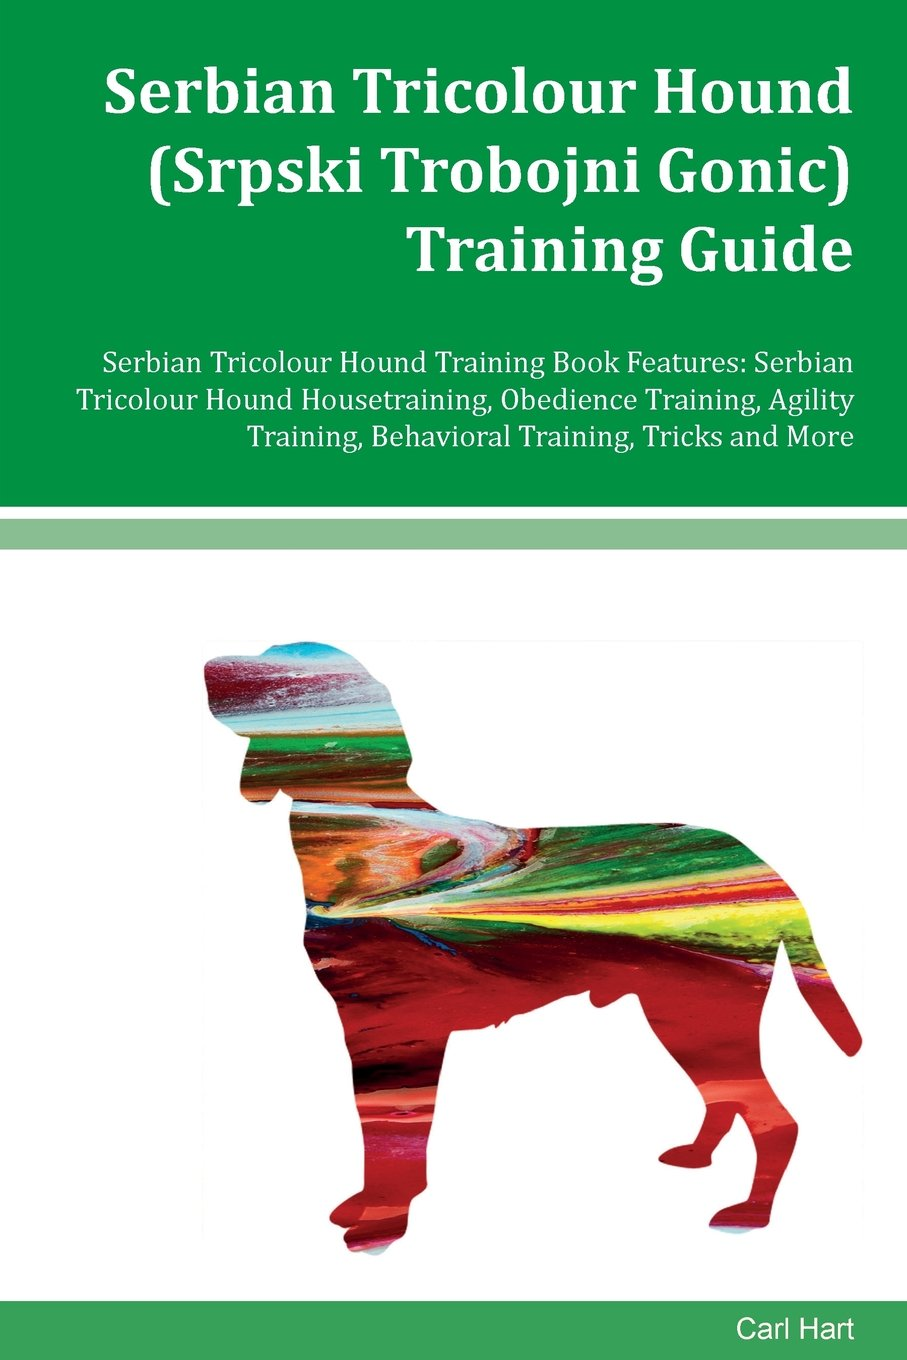 Download Serbian Tricolour Hound Training Guide Serbian Tricolour Hound Training Book Features: Serbian Tricolour Hound Housetraining, Obedience Training, Agility Training, Behavioral Training, Tricks and More ebook